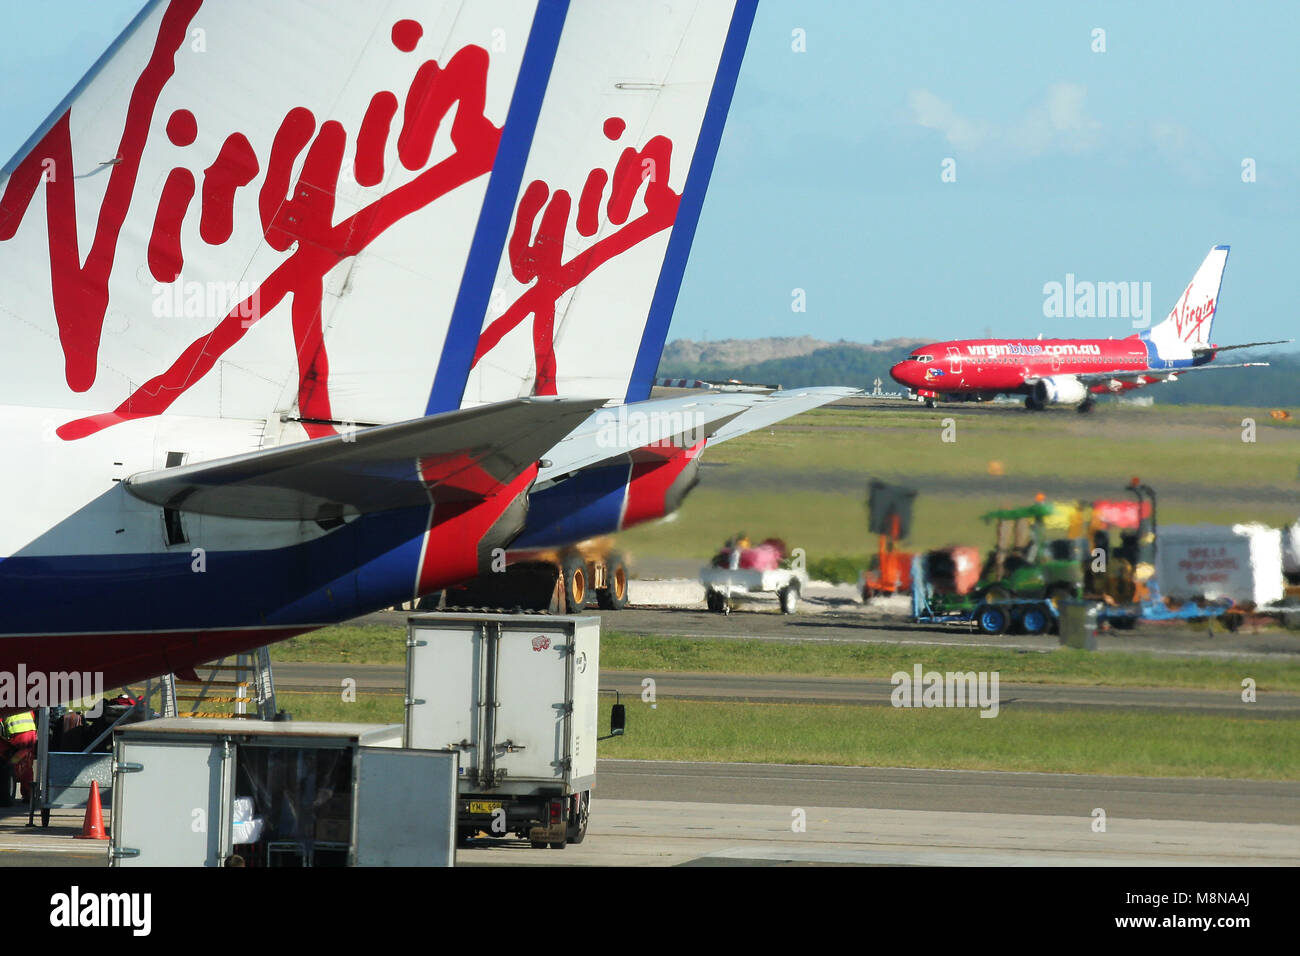 Virgin planes, Sydney Airport, New South Wales, Australia - Stock Image